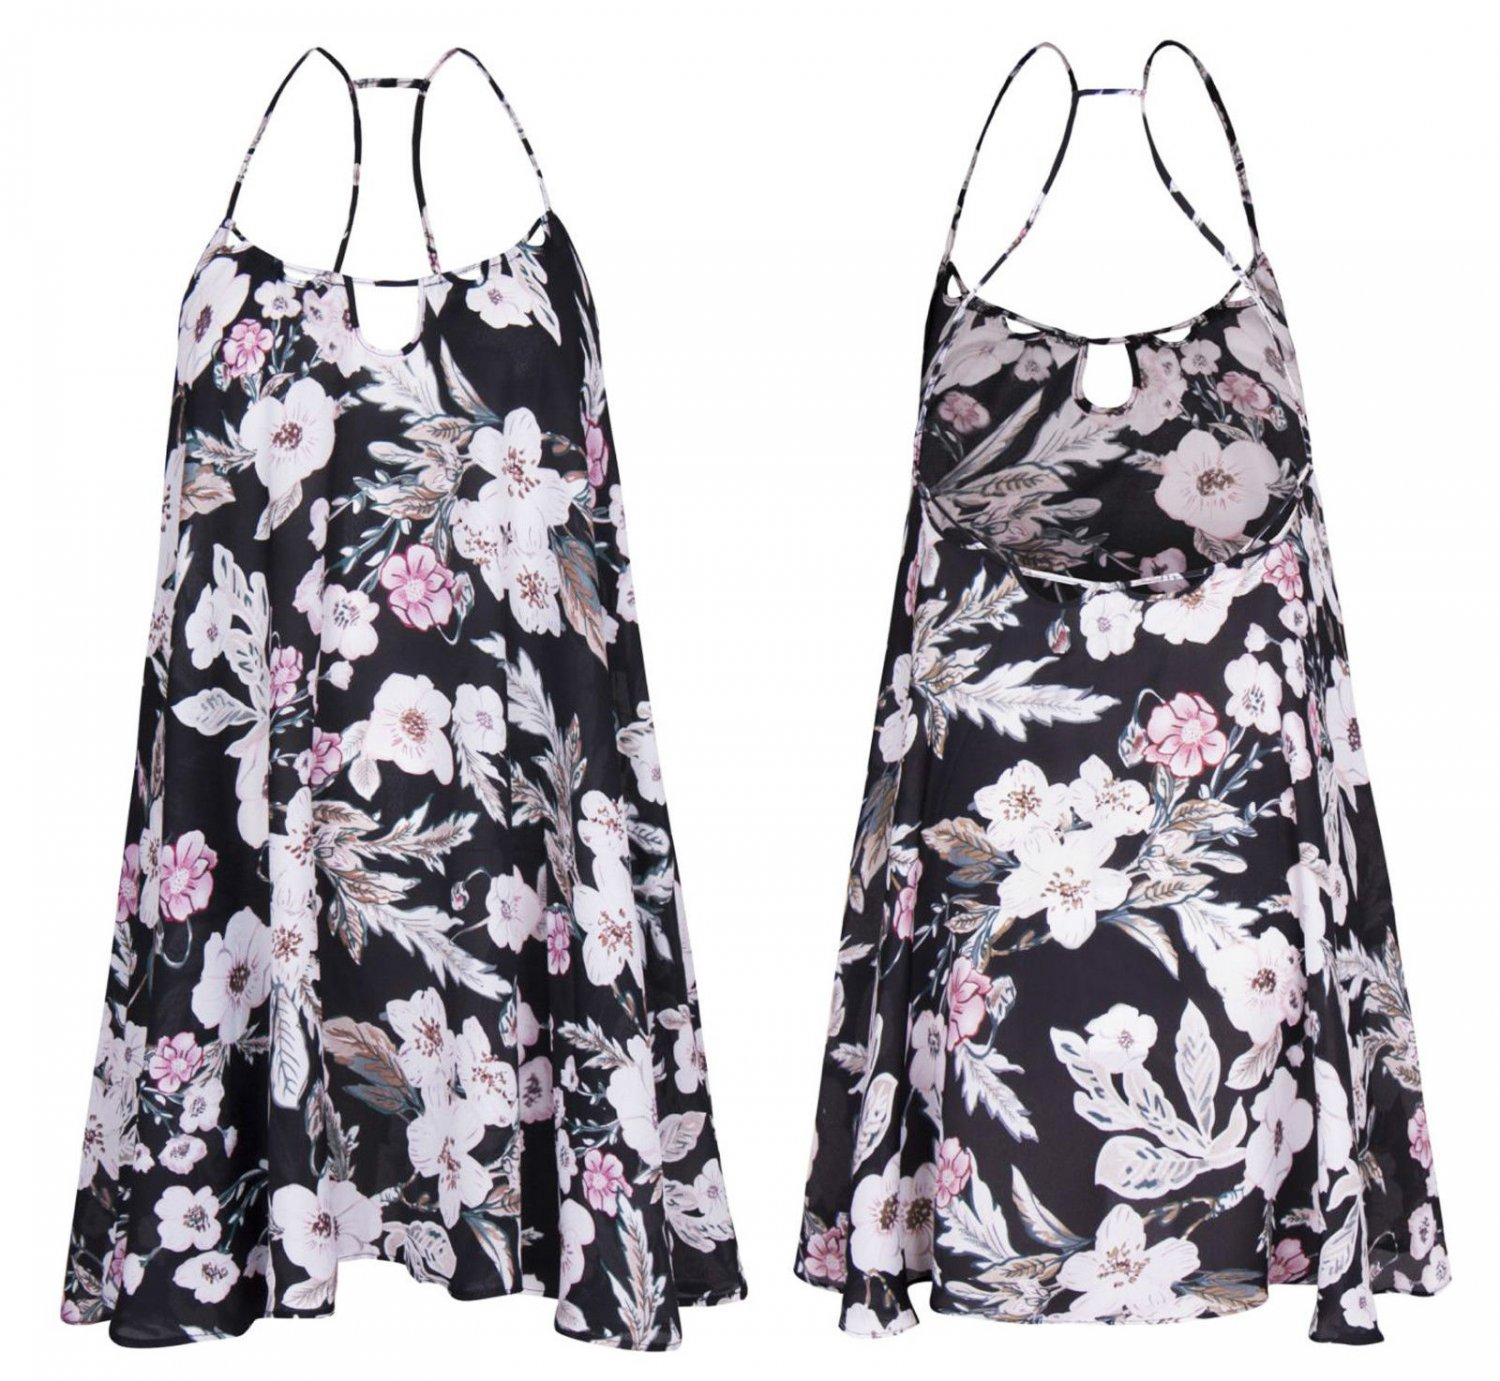 Women Floral Print Asymmetric Sumner Sleeveless Loose A Line Swing Dress UK Size 14 Black